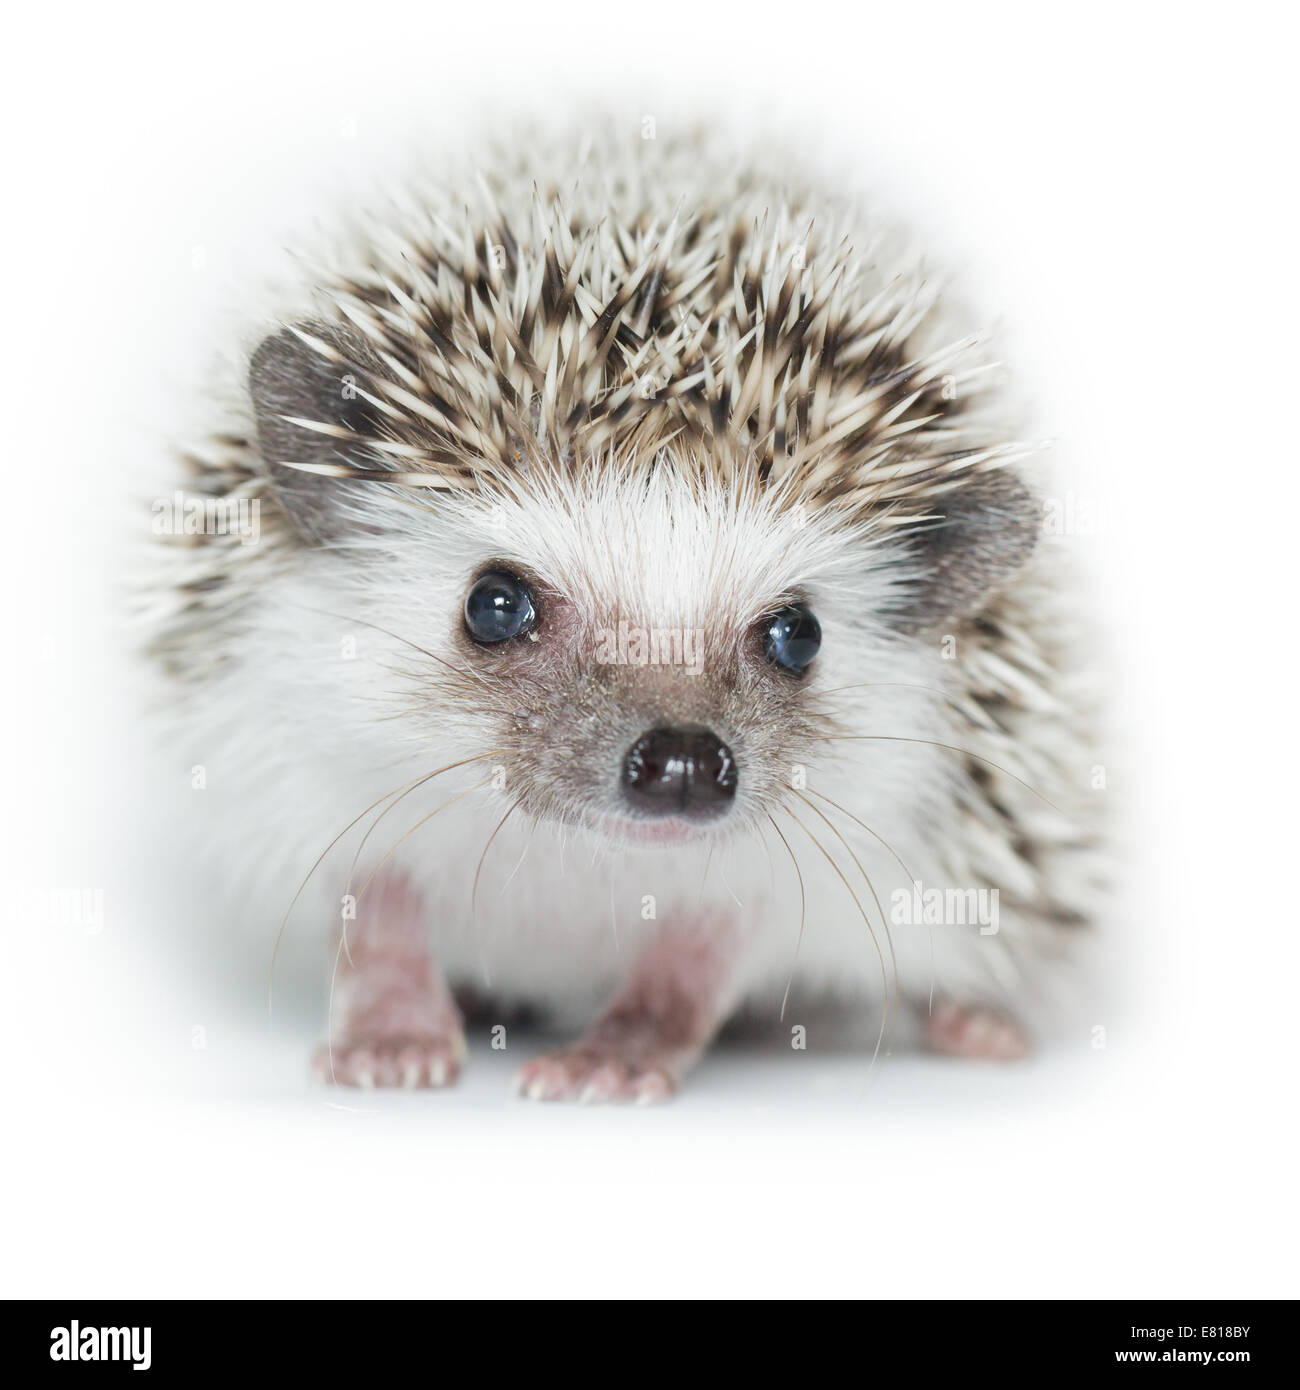 Atelerix albiventris, African pygmy hedgehog. in front of white background, isolated. - Stock Image